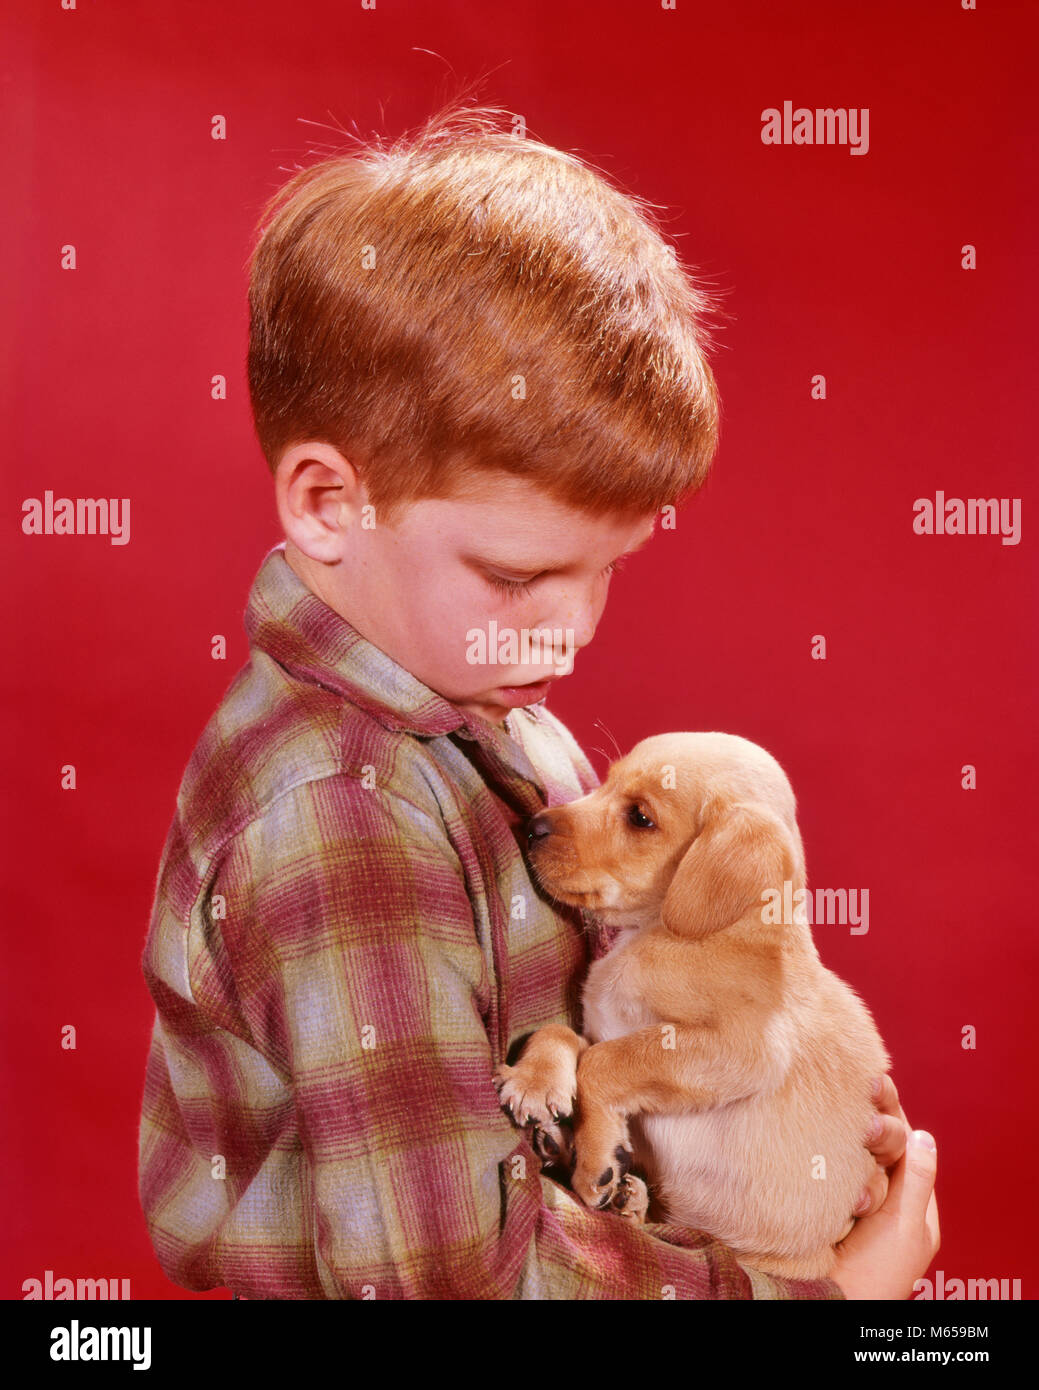 1960s SERIOUS BOY RED PLAID SHIRT RED HAIR HOLDING SMALL PUPPY DOG PET - kd1356 HAR001 HARS 7-9 YEARS ONE ANIMAL - Stock Image